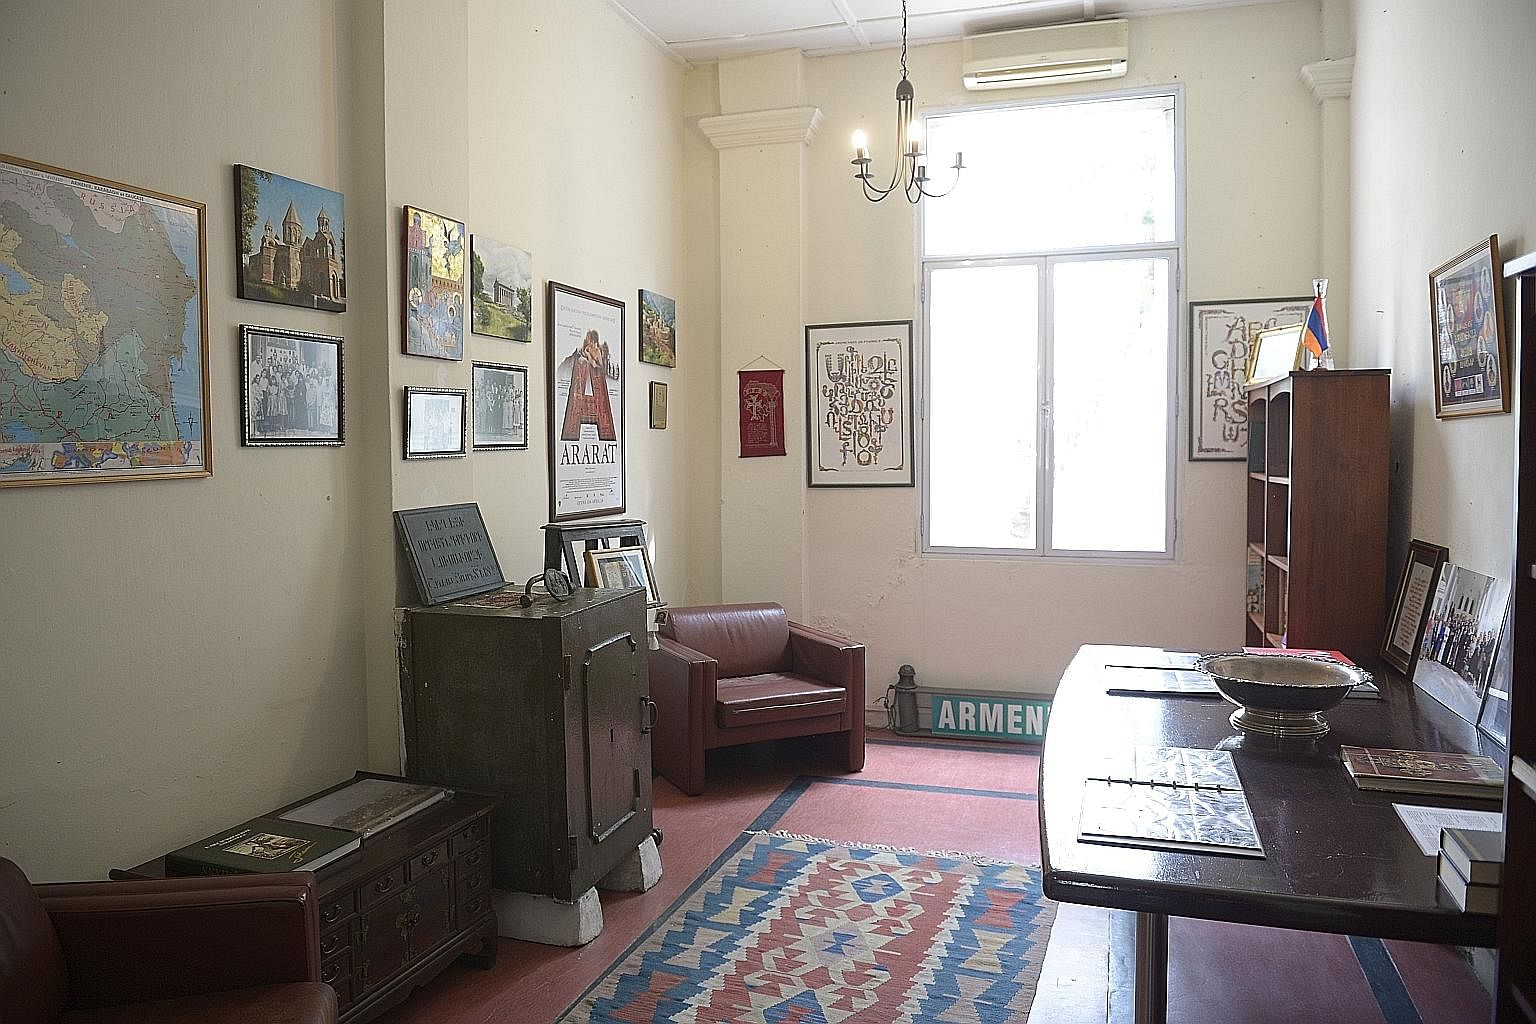 This room on the ground floor of the two-storey parsonage is chock-a-block with maps of Armenia and Armenian artefacts, and photo albums of the community here. Volunteers from the community will turn the entire building into a museum and library by next y